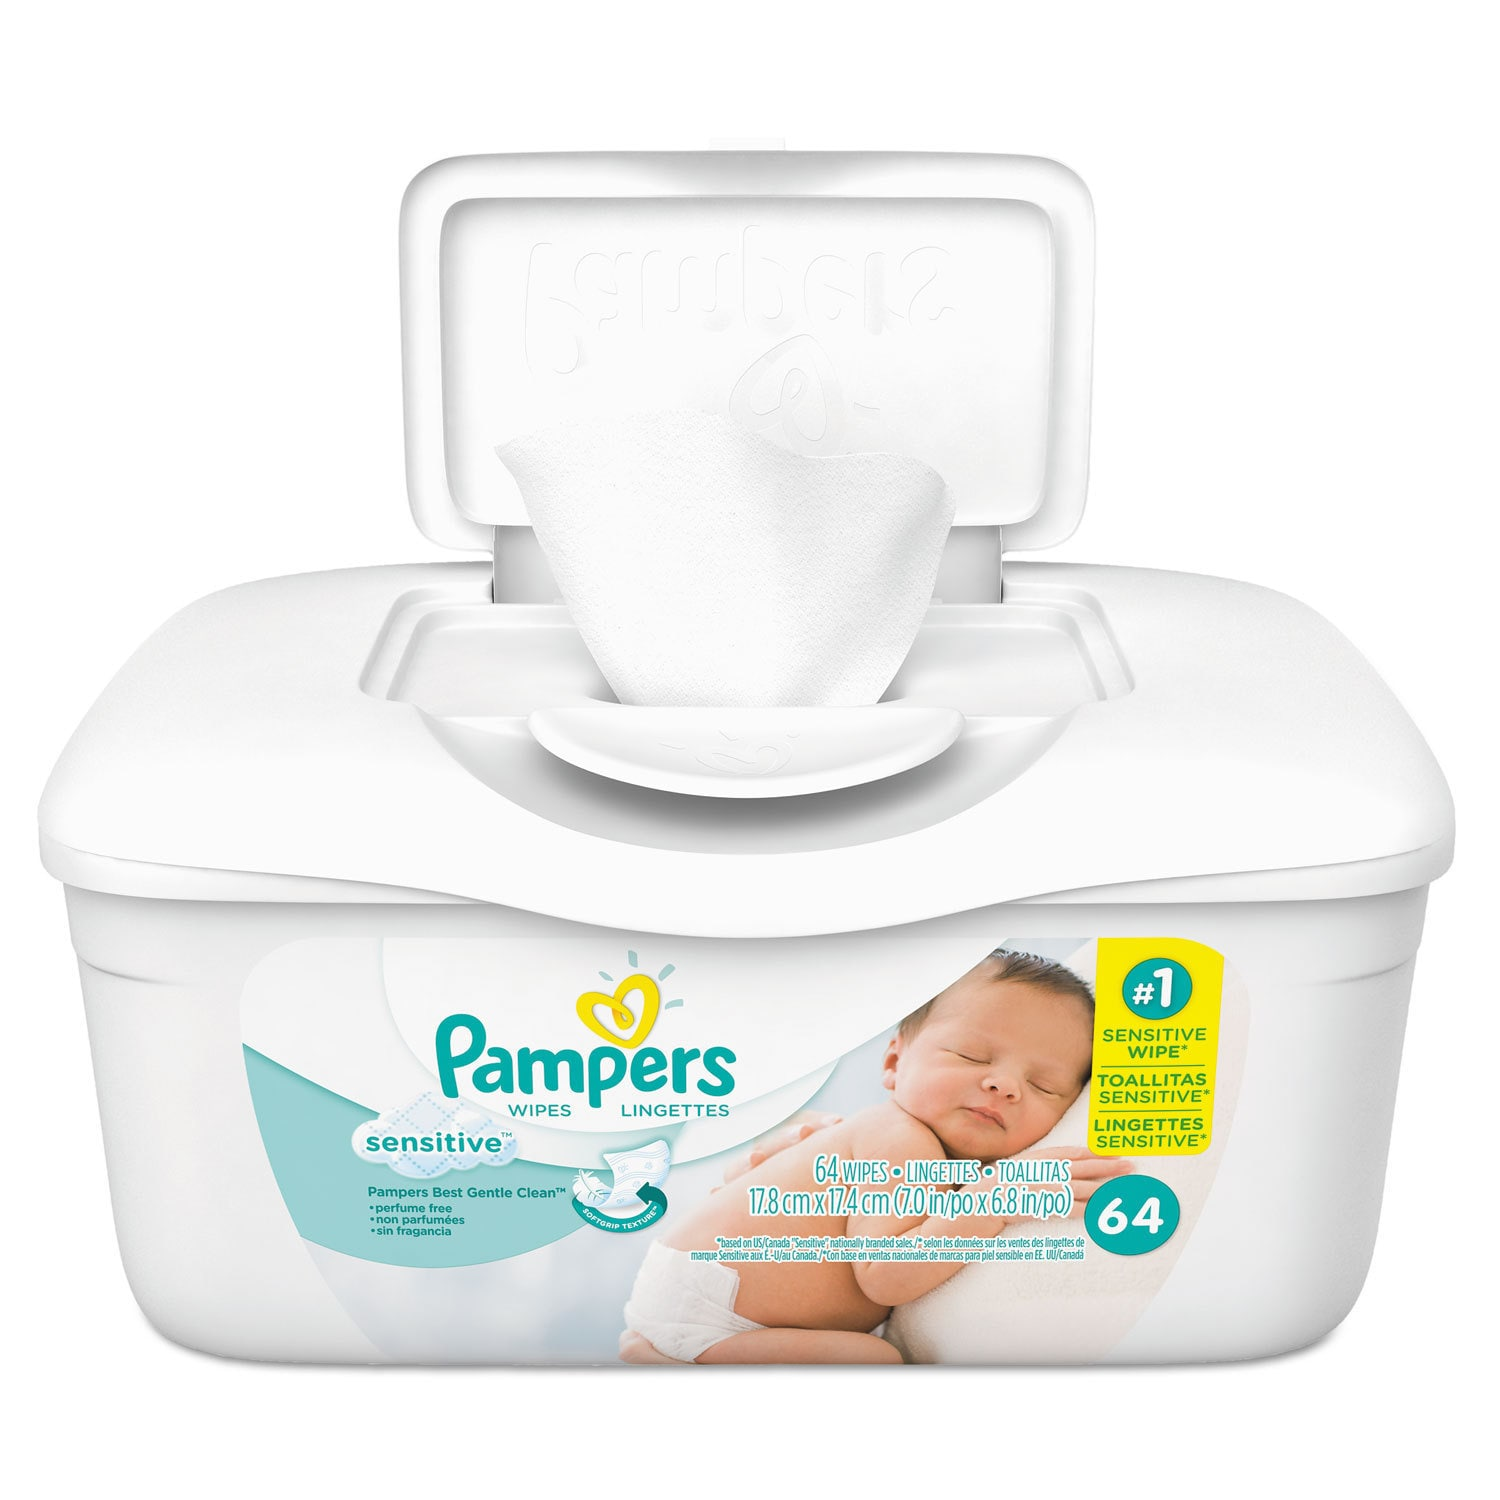 Pampers Sensitive Baby Wipes White Cotton Unscented 64/Tub 8 Tub/Carton (White)